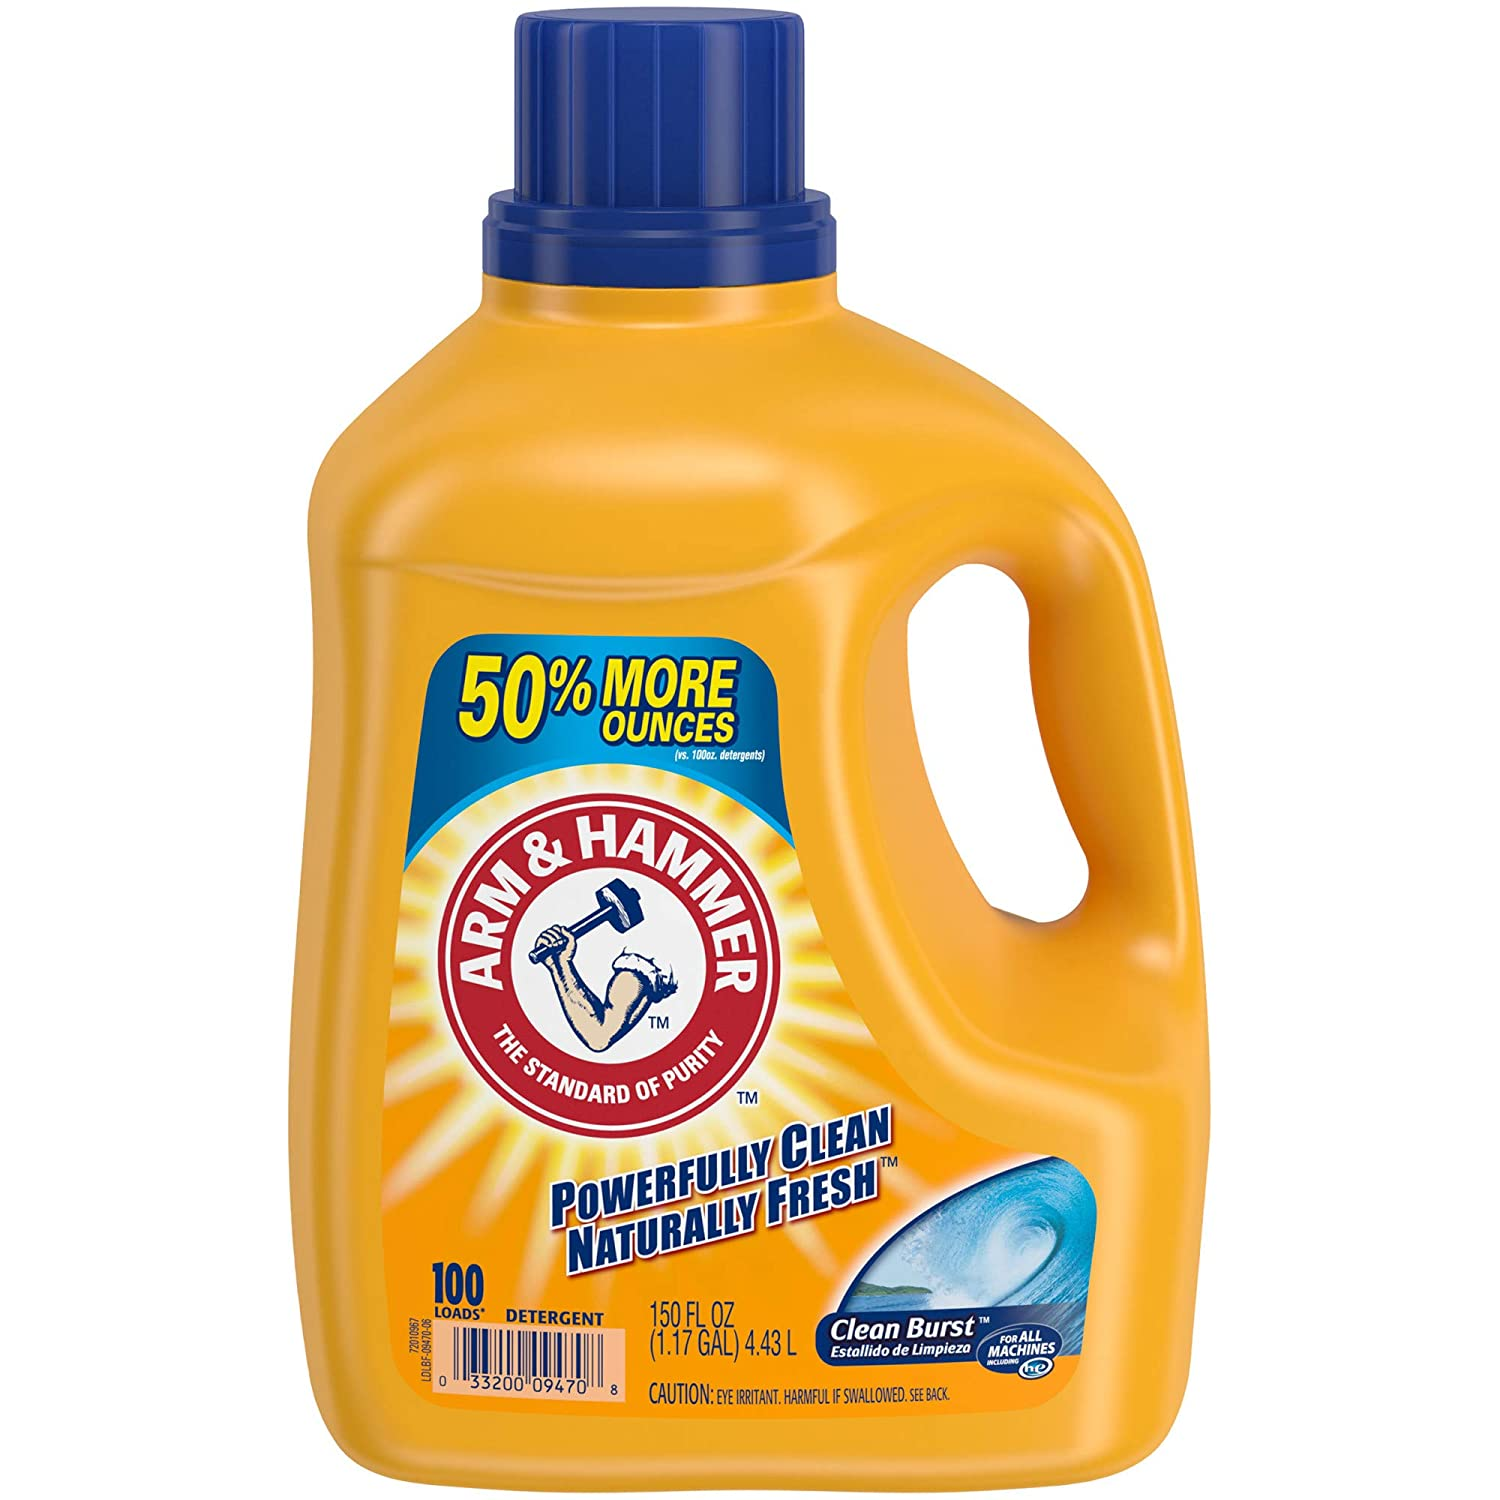 ARM & HAMMER Clean Burst HE Liquid Laundry Detergent, 100 loads